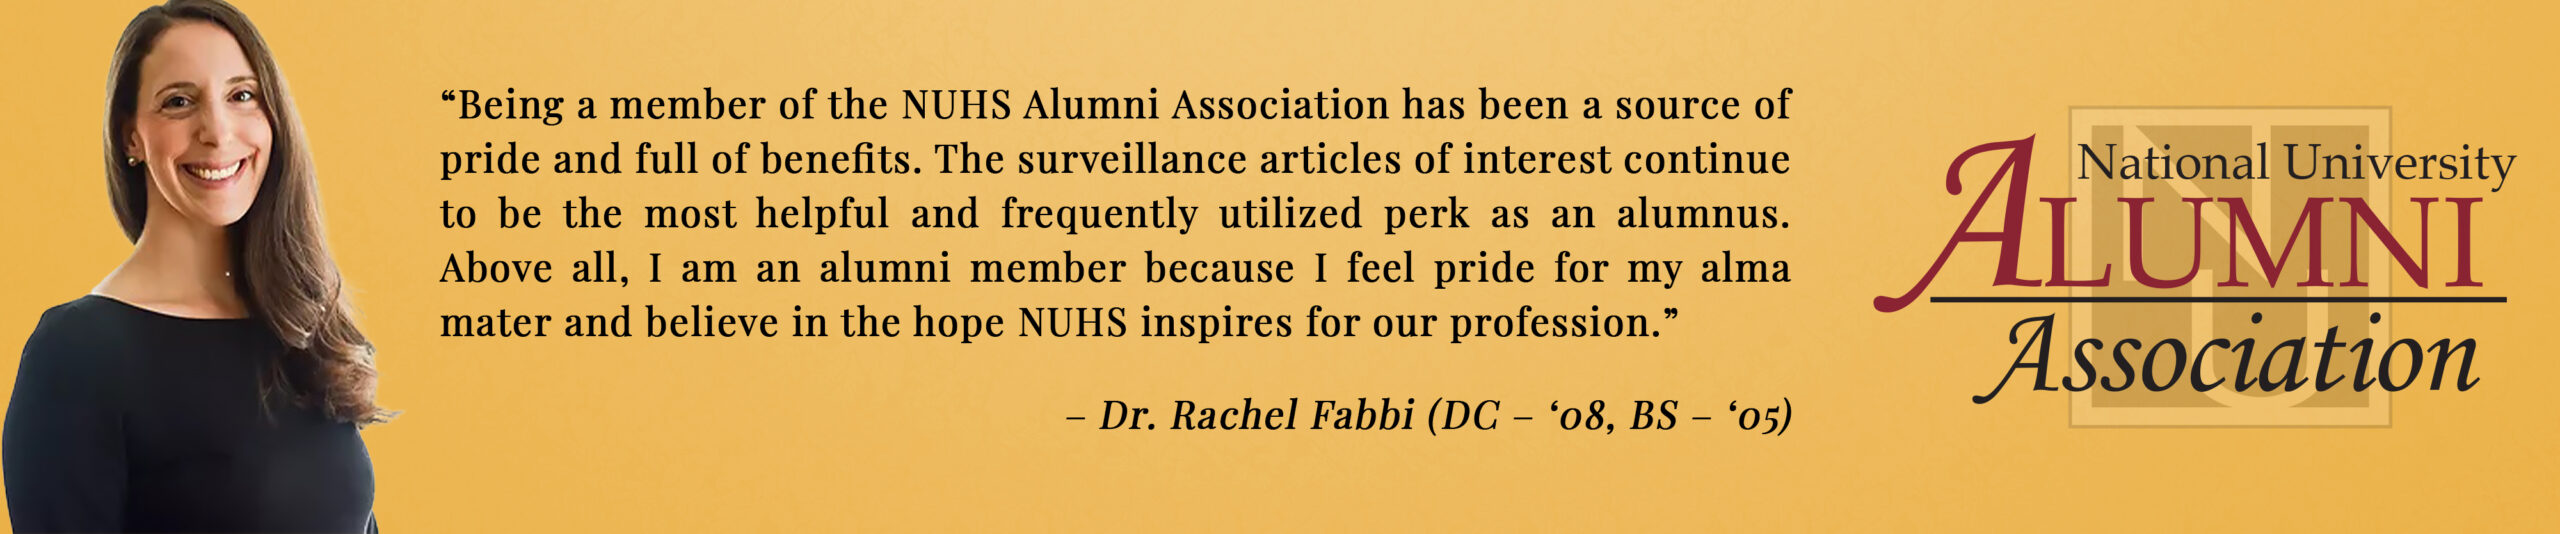 """""""Being a member of the NUHS alumni association has been a source of pride and full of benefits. The surveillance articles of interest continue to be the most helpful and frequently utilized perk as an alumnus. Above all, I am an alumni member because I feel pride for my alma mater and believe in the hope NUHS inspires our profession."""" - Dr. Rachel Fabbi"""